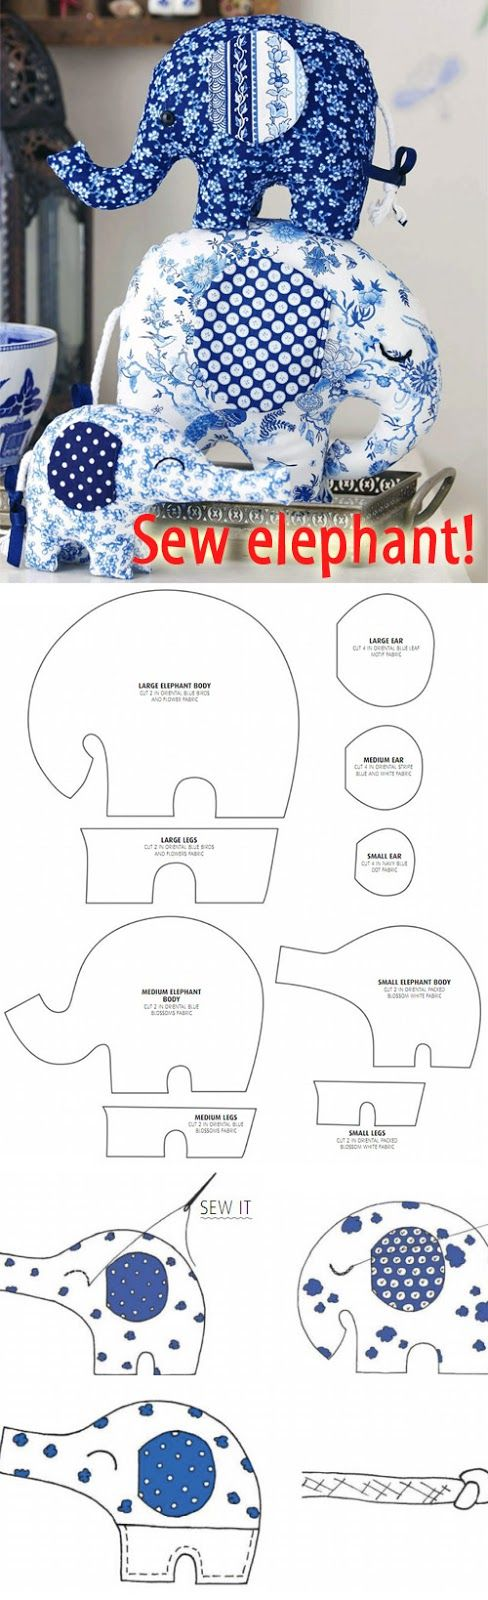 Elephantastic! How to Sew an Elephant?…